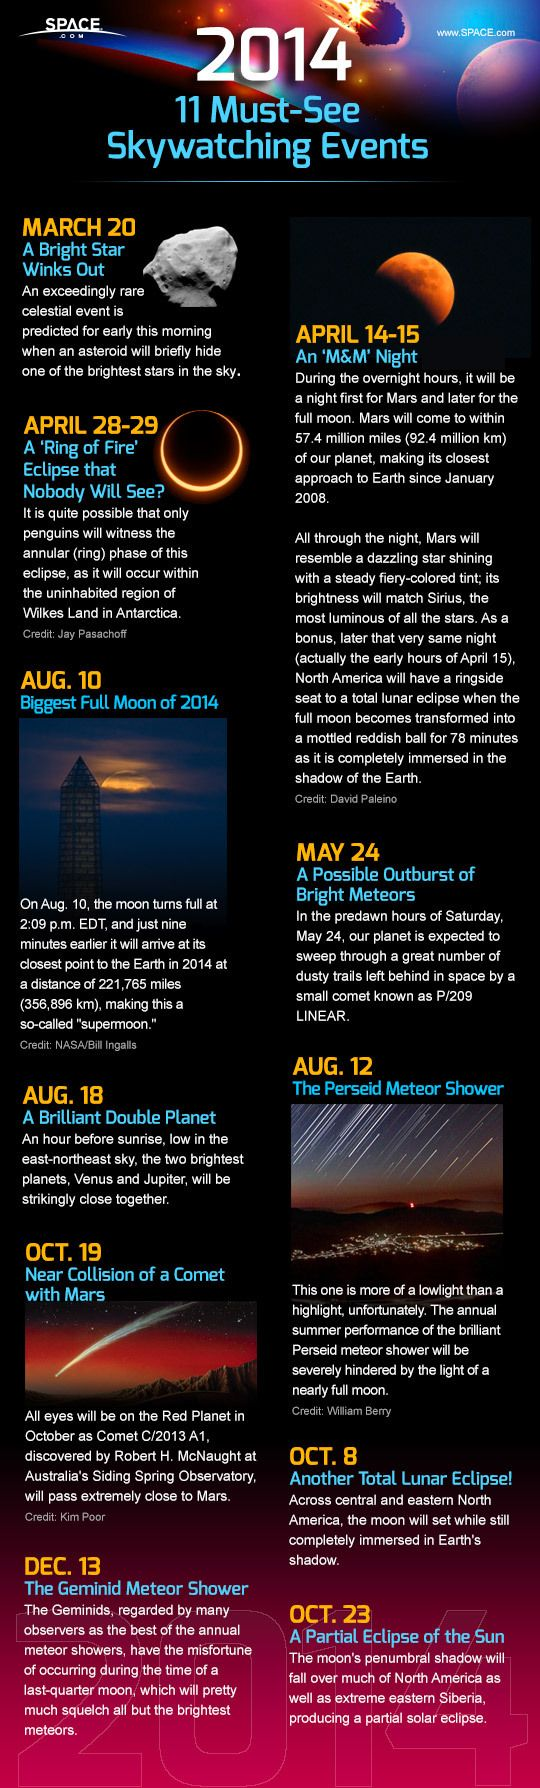 Don't miss these major sky events in 2014.